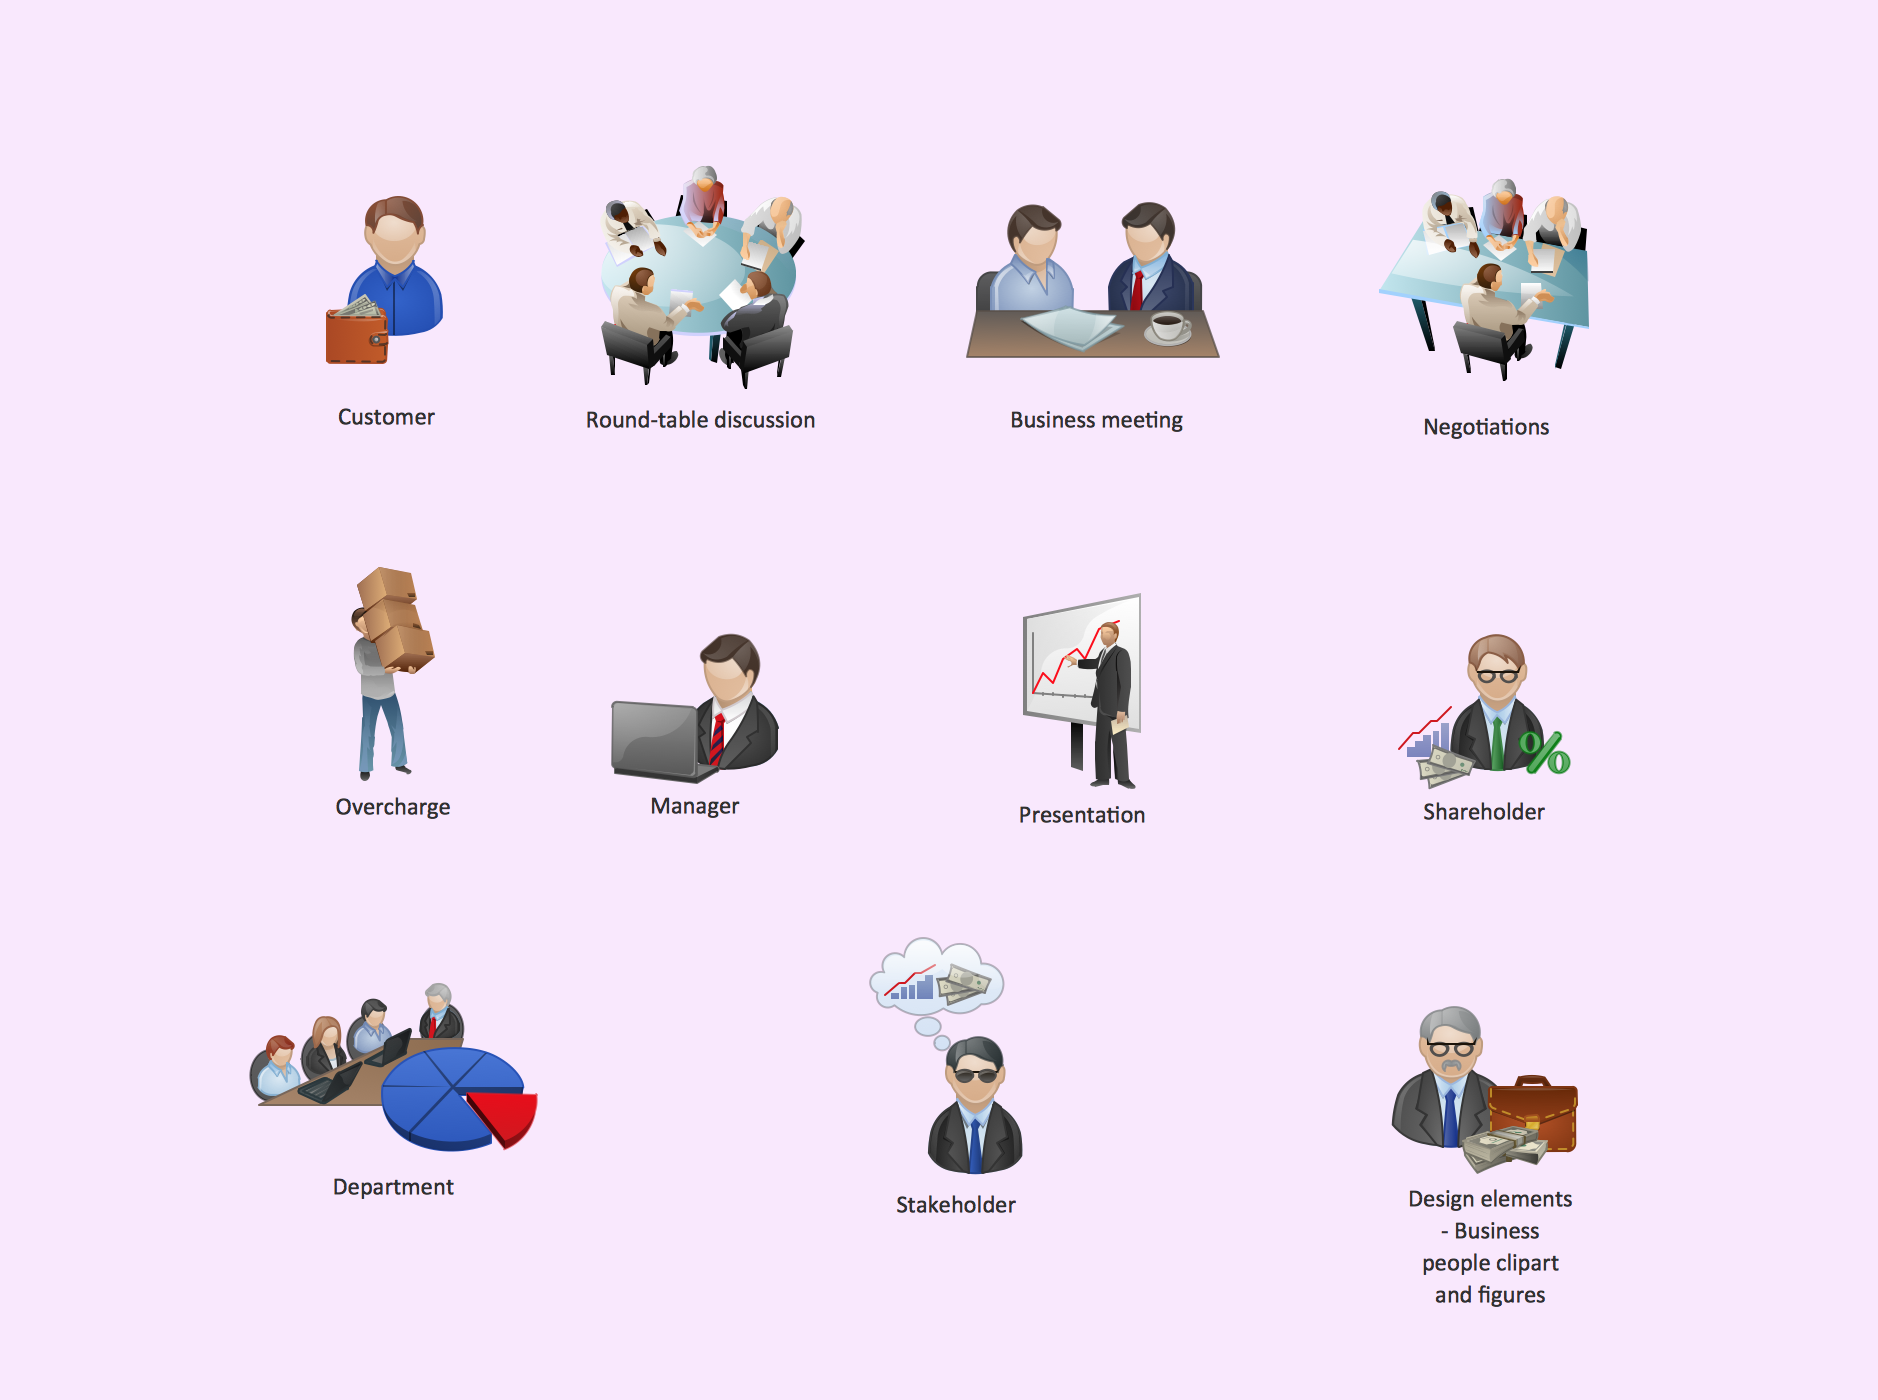 Business People Clipart *